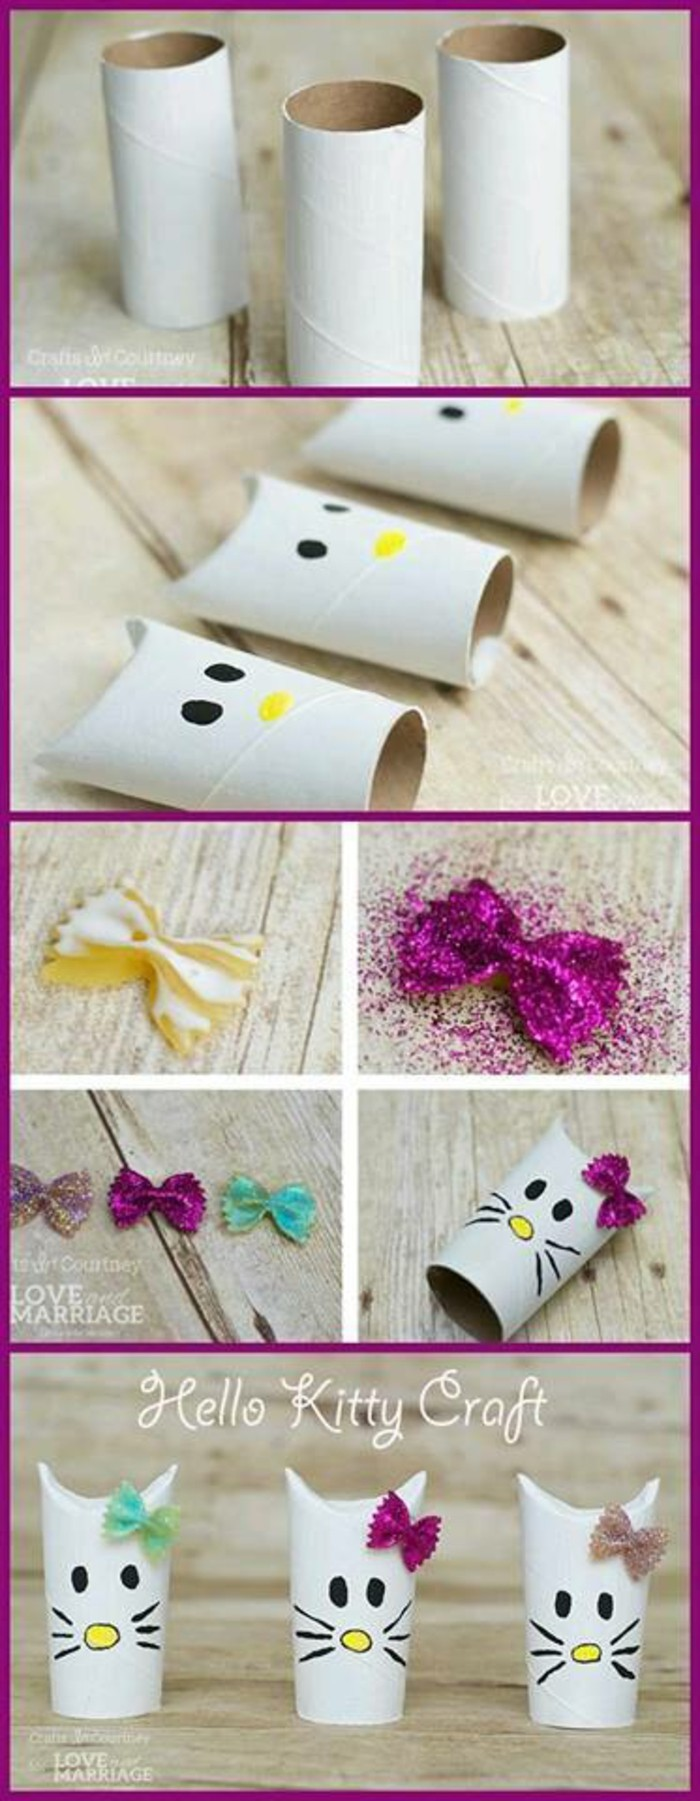 tinkering with toilet paper rolls diy ideas decorating ideas tinkering with kids helo kitty